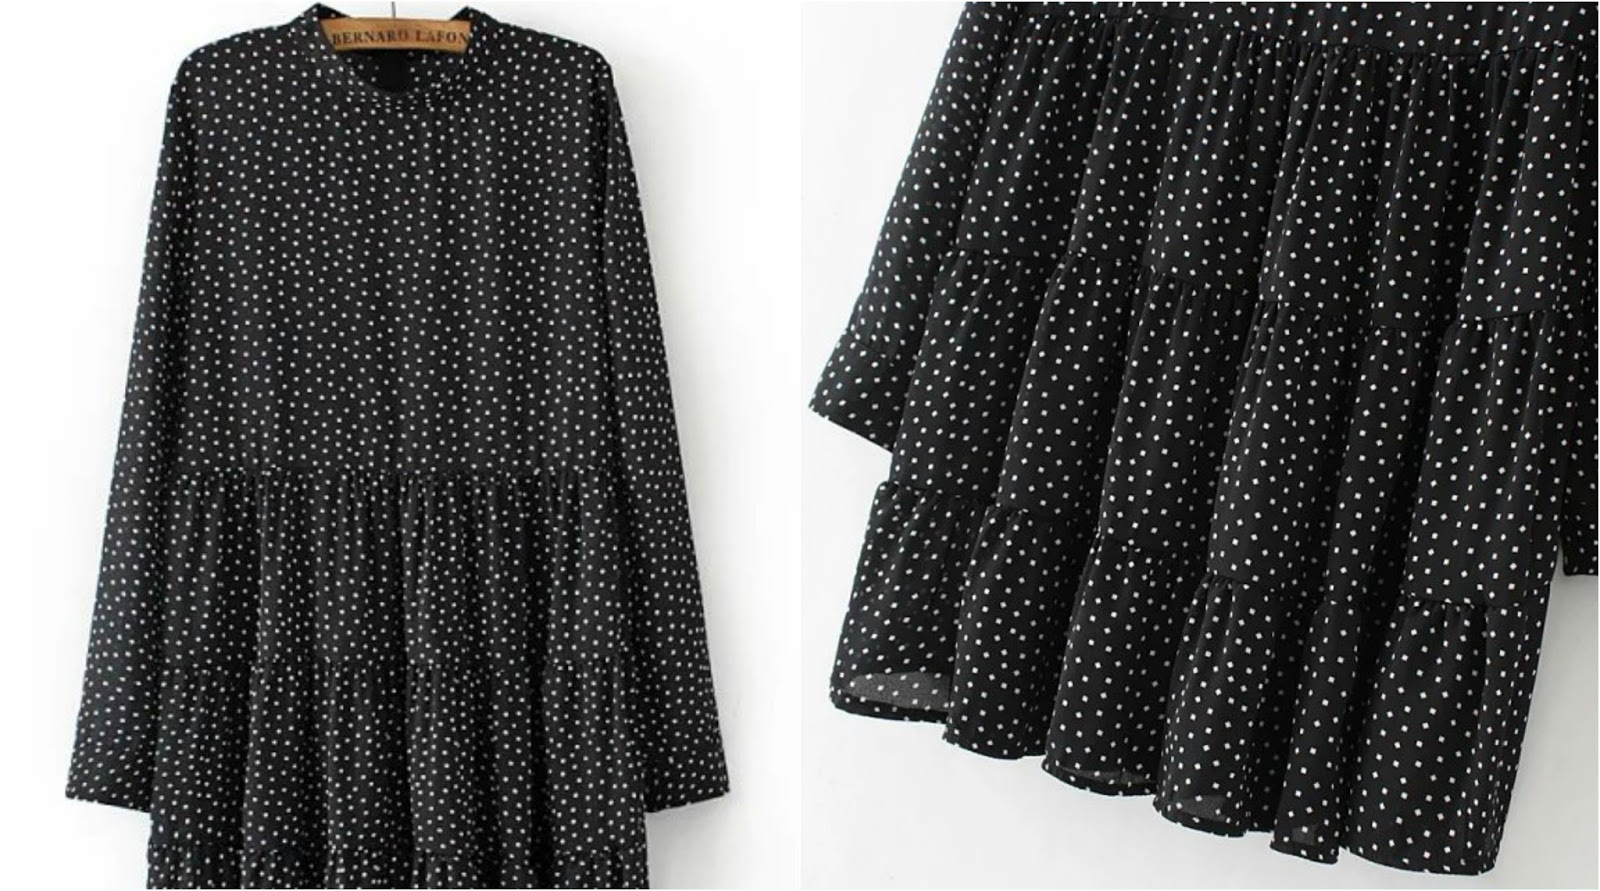 Black Stand Collar Square Print Dress